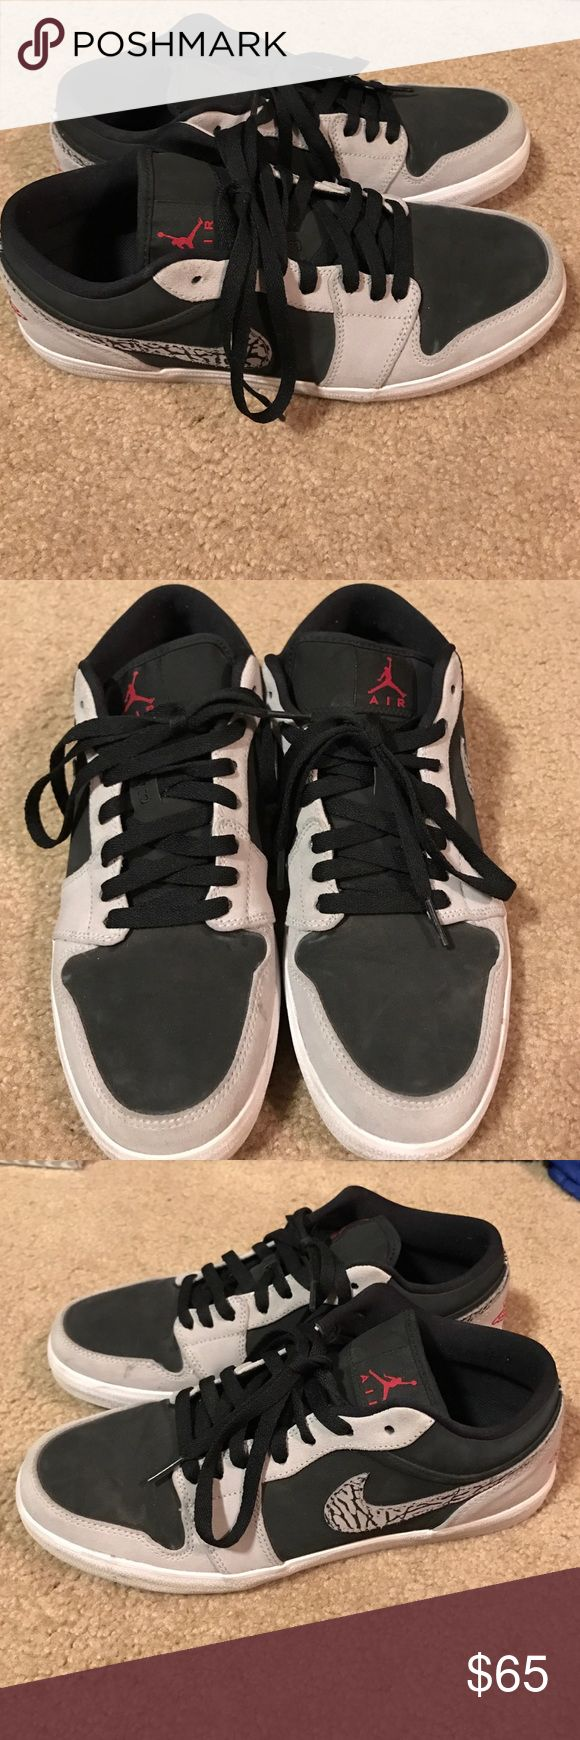 Team Jordan Low Top 1's Good shoe, quality 8/10 worn a couple times, suede, and comfortable Jordan Shoes Sneakers